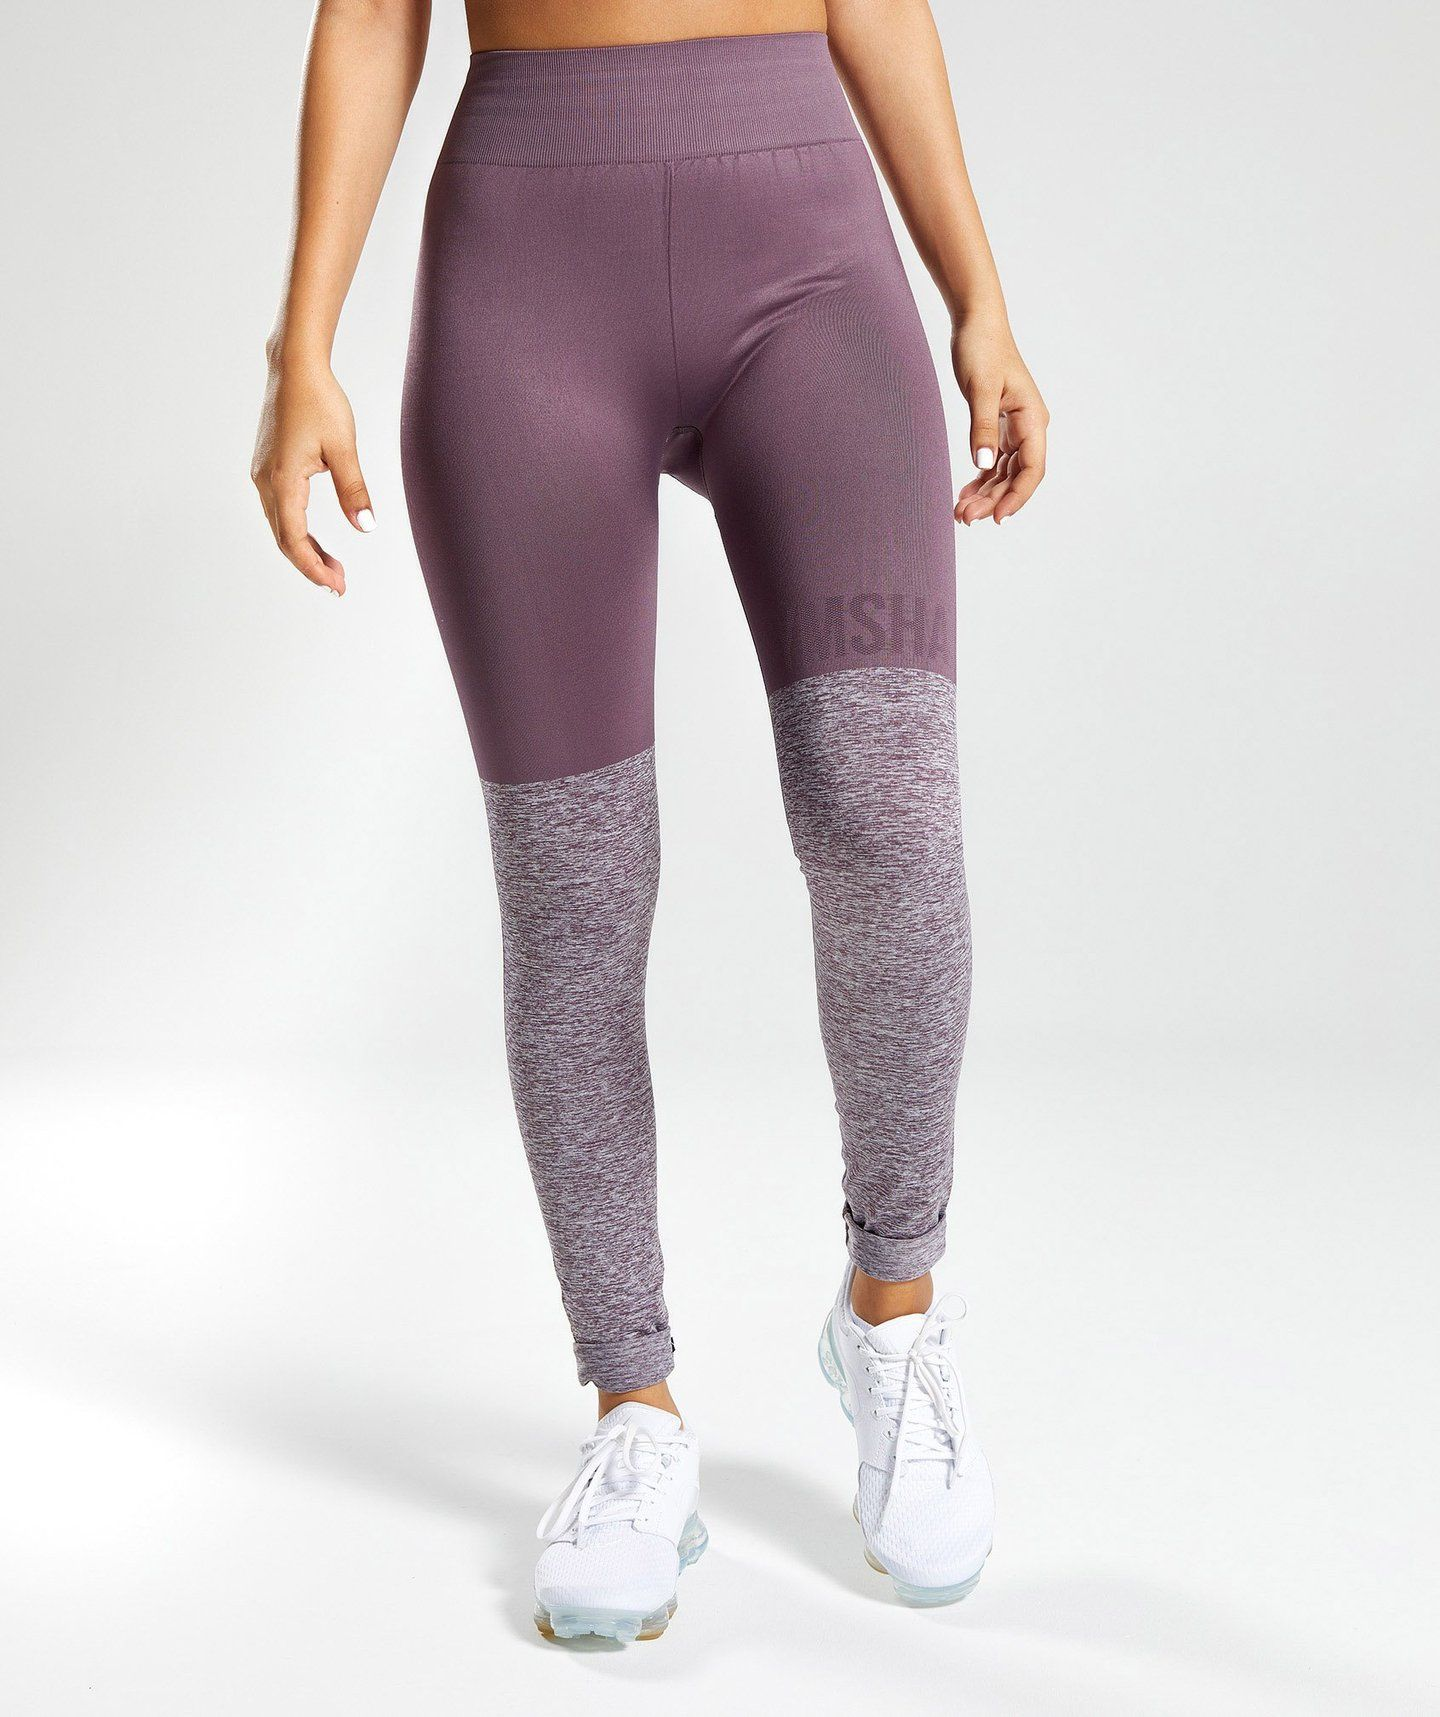 c0eabcde58db5 Gymshark TwoTone Seamless Leggings - Purple Wash 1 | Wishlist ...